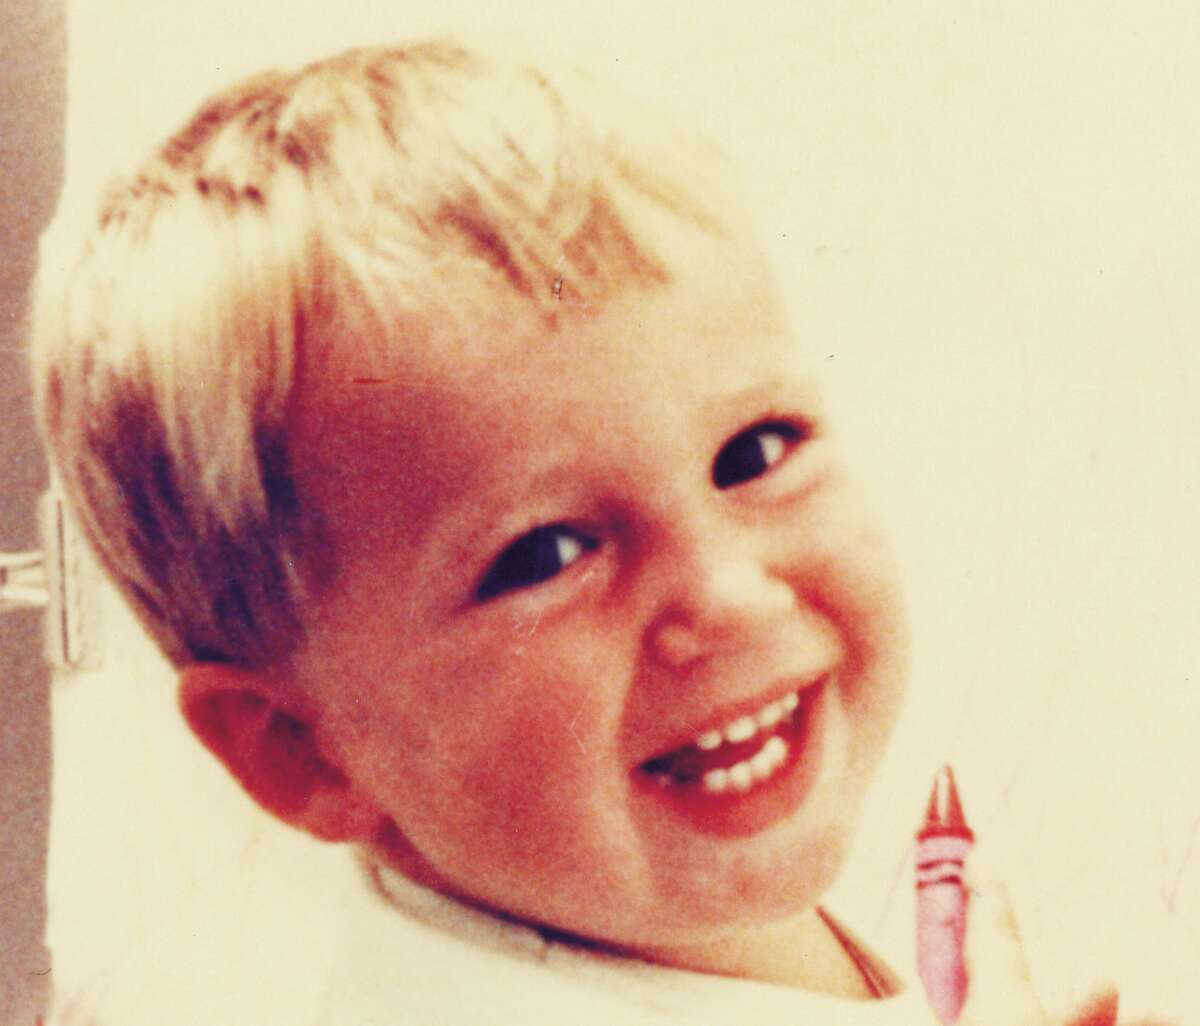 Stewie Leonard III, the son of Kim and Stew Leonard Jr., accidentally drowned in 1989.